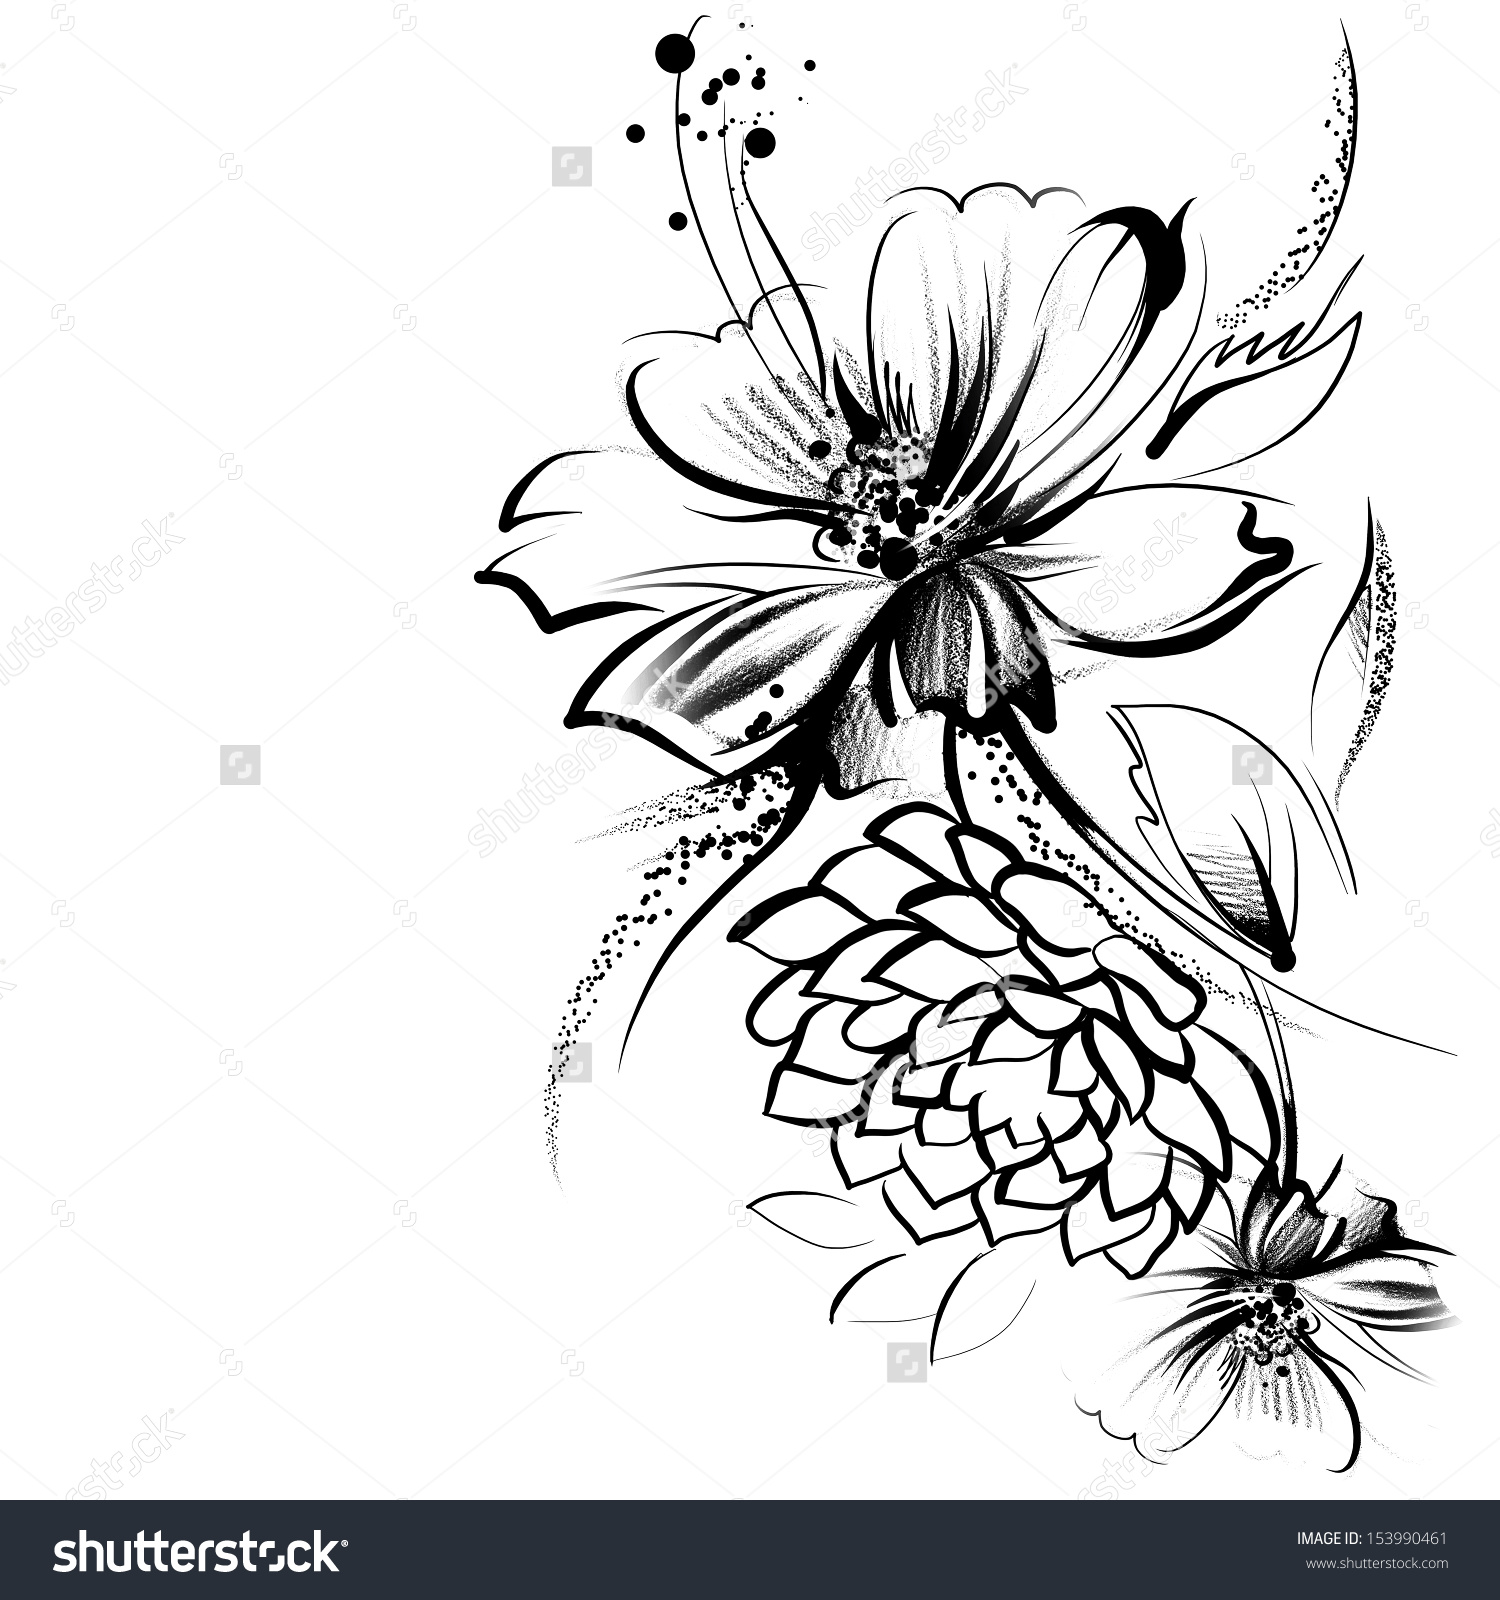 1500x1600 Black Background With White Flower Drawings Stock Photos Images